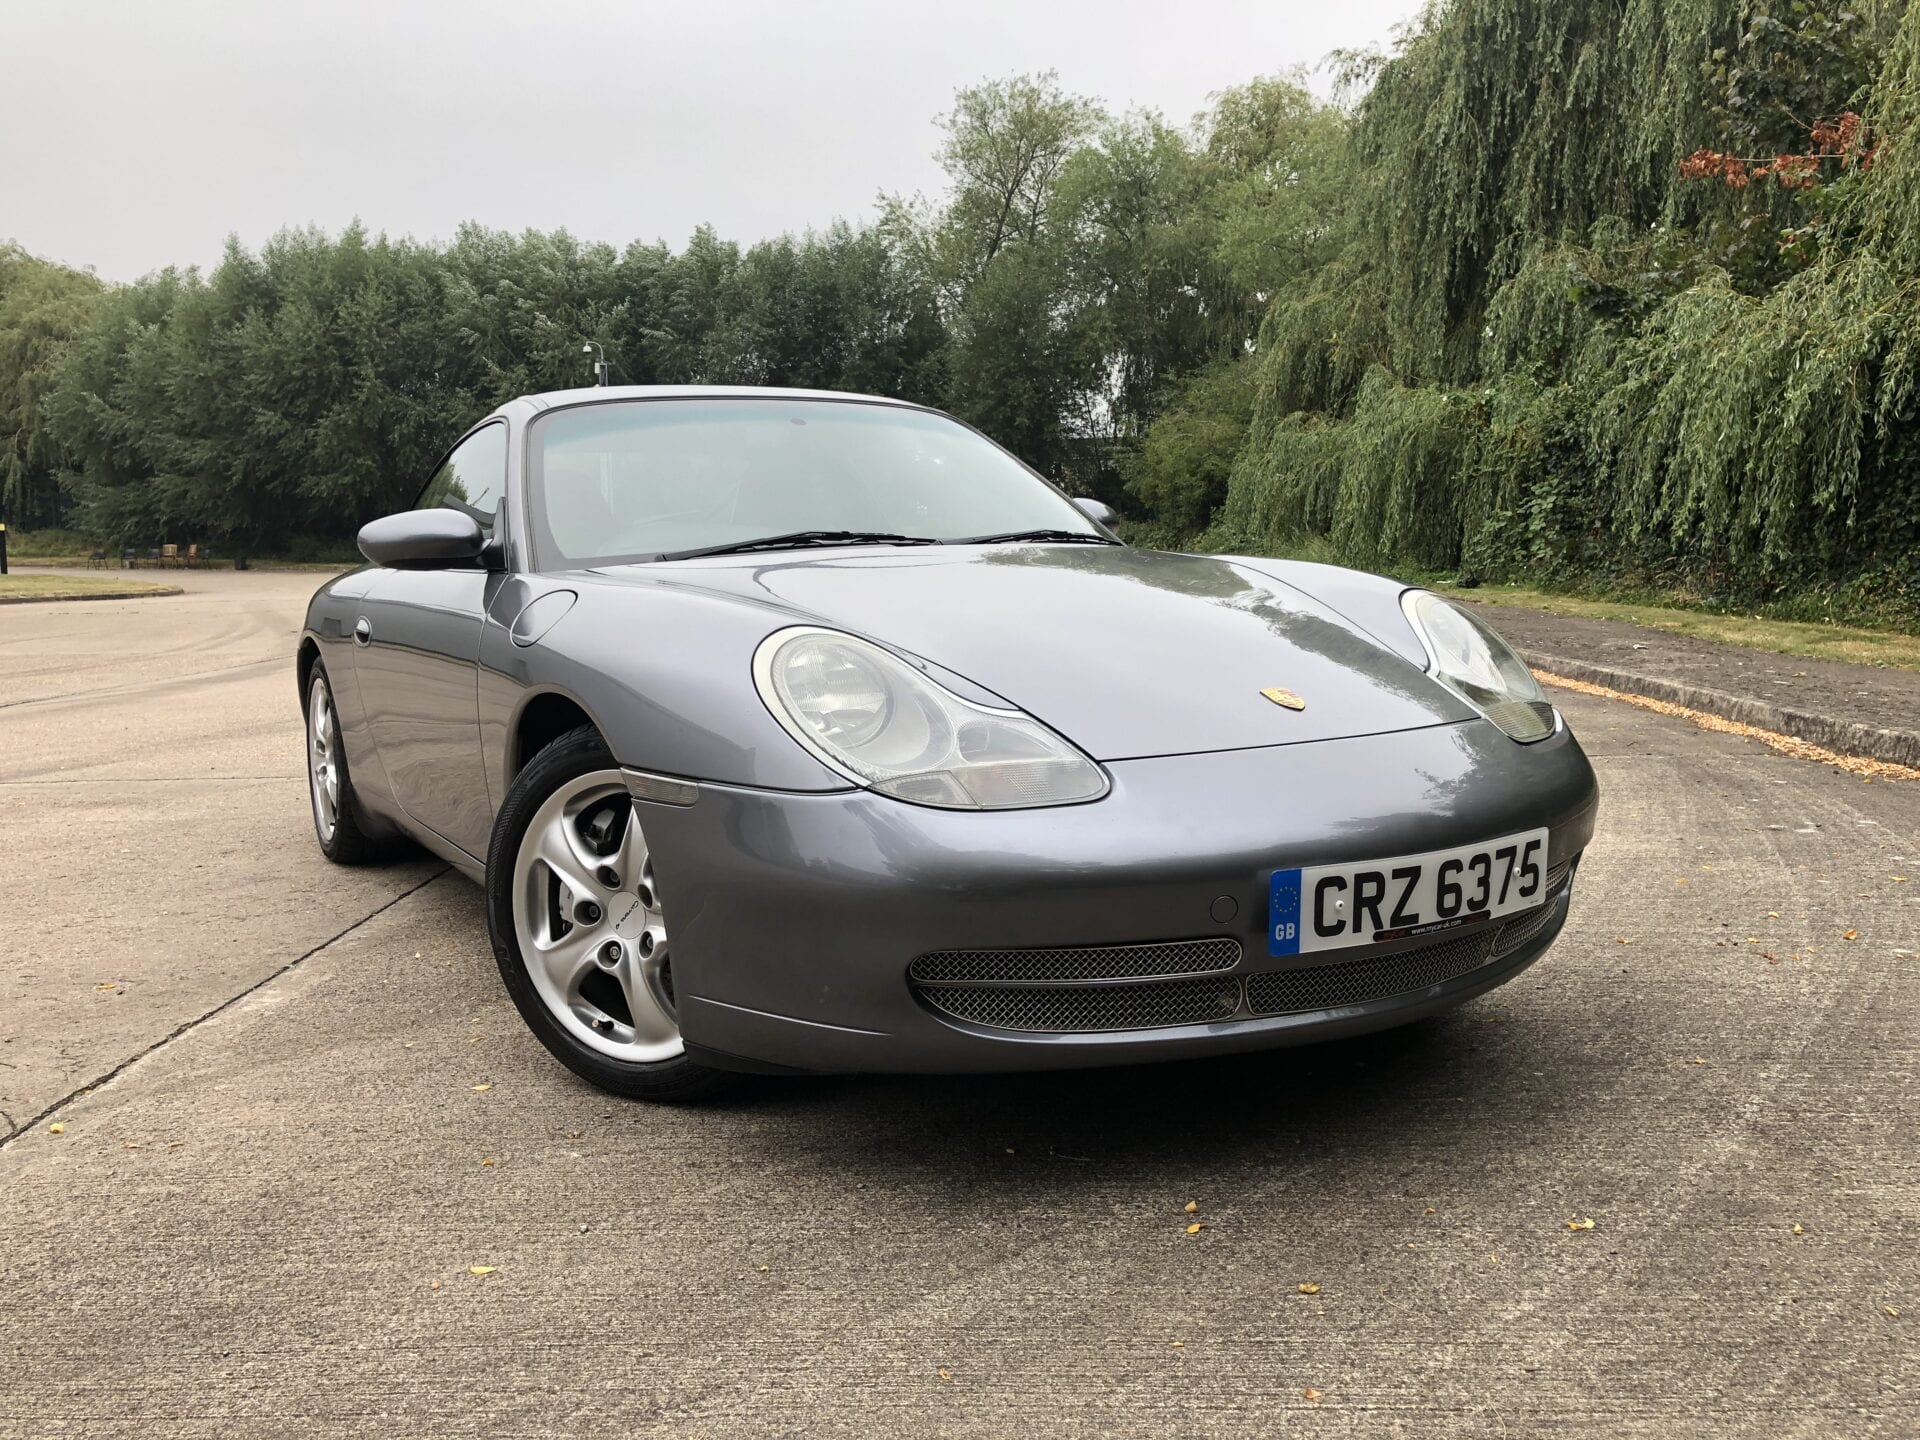 myCar UK - 2001 Porsche 911 3.4 996 Carrera 4 Tiptronic S AWD 2dr